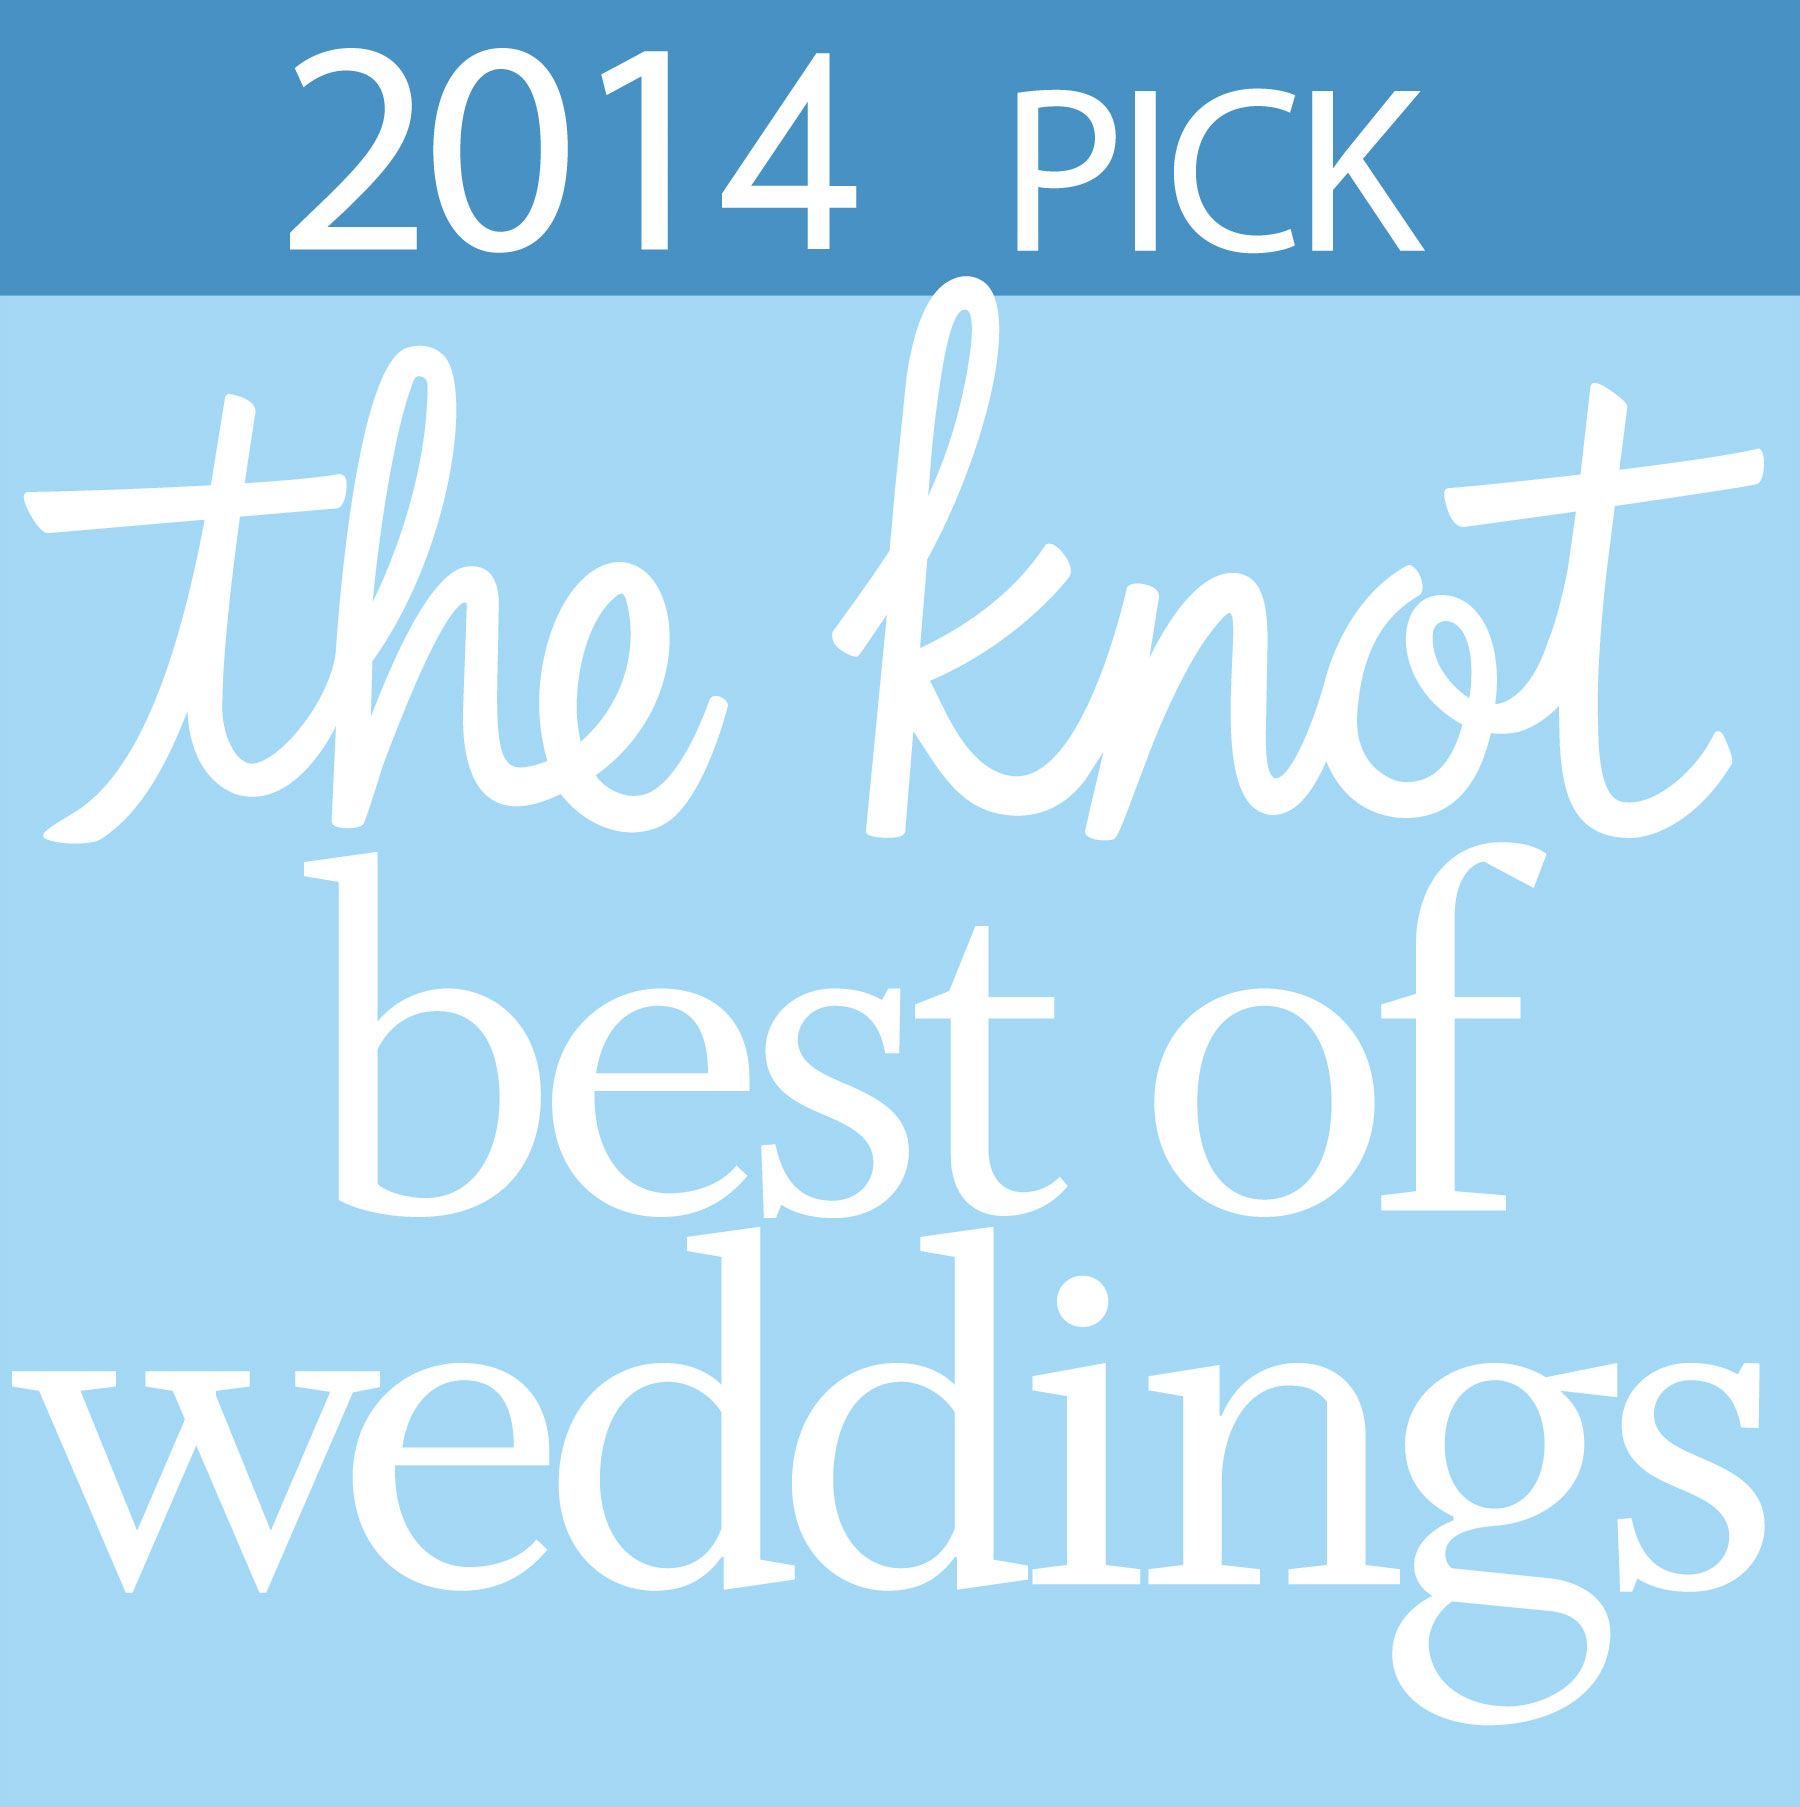 Salem Cross Inn, West Brookfield, MA - 2014 Best of Weddings pick by The Knot!